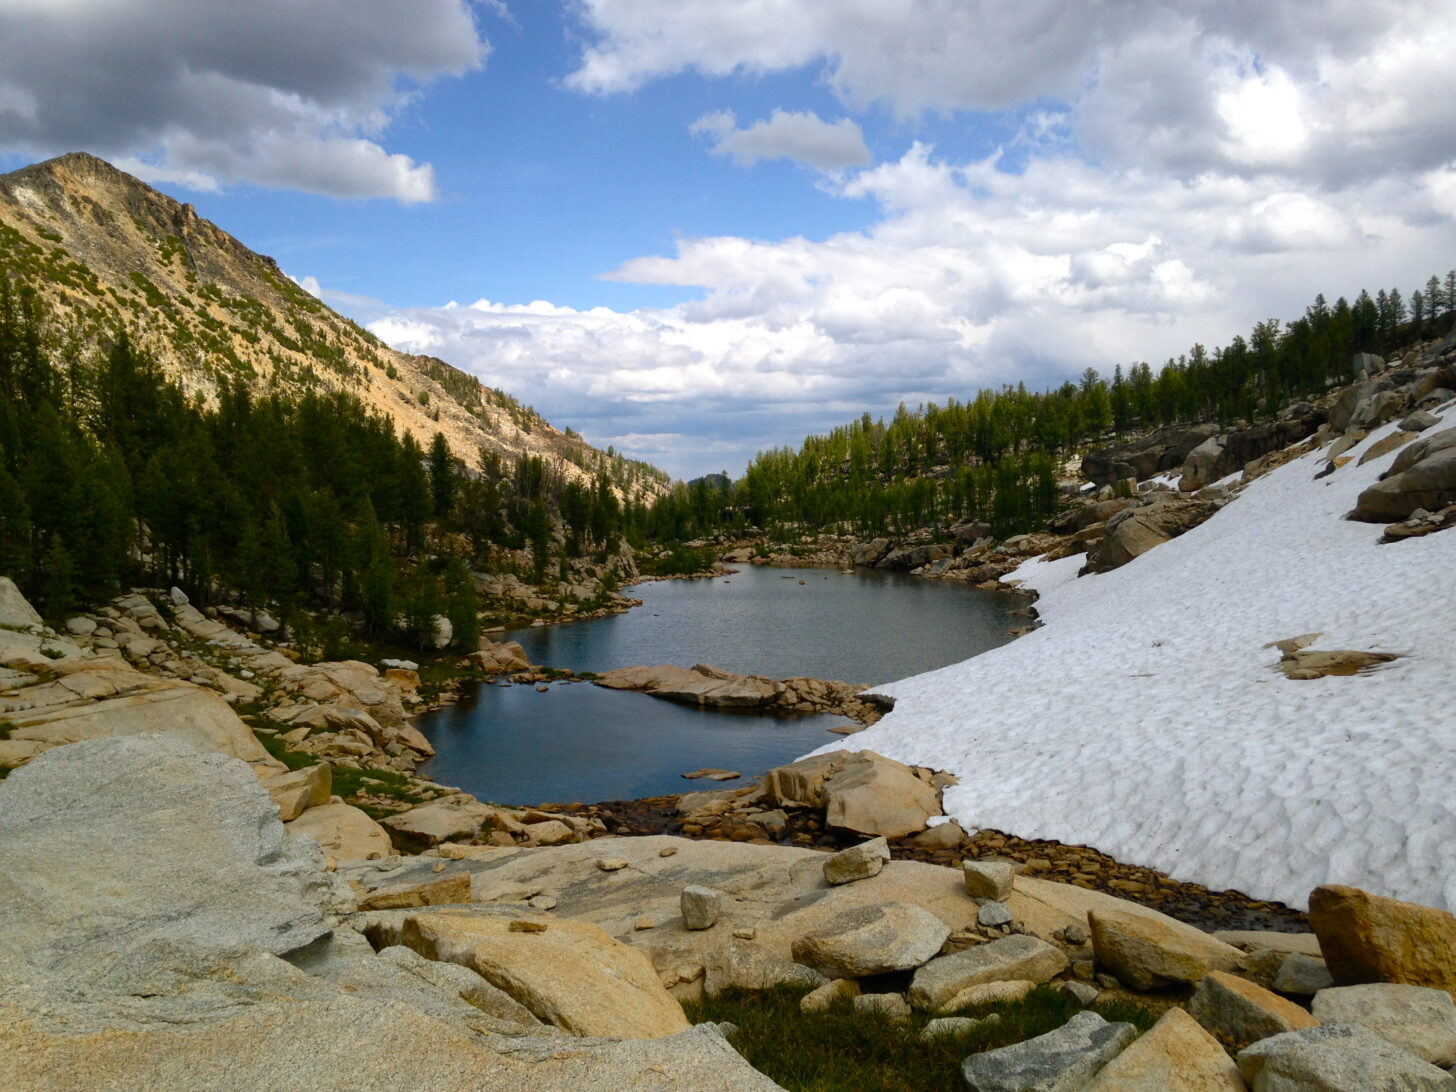 a lake surrounded by snowpack and rocks with a mountain in the background.